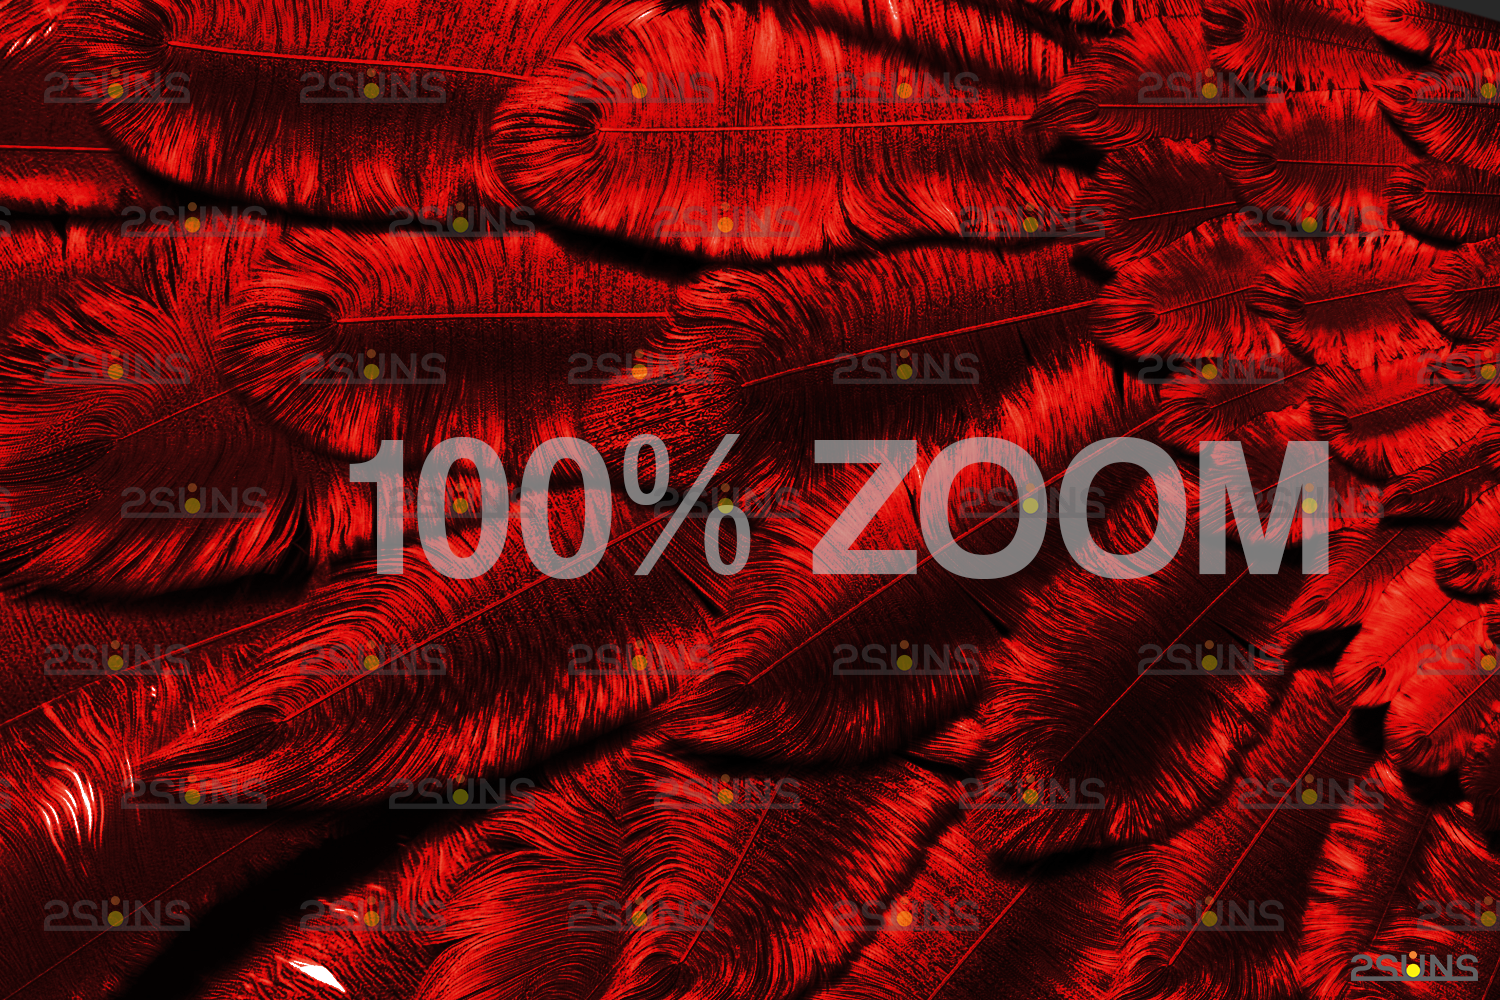 Red angel wings png & Photoshop overlay: Digital angel wings overlay, Digital backdrops wings, Fire - 005 62 -